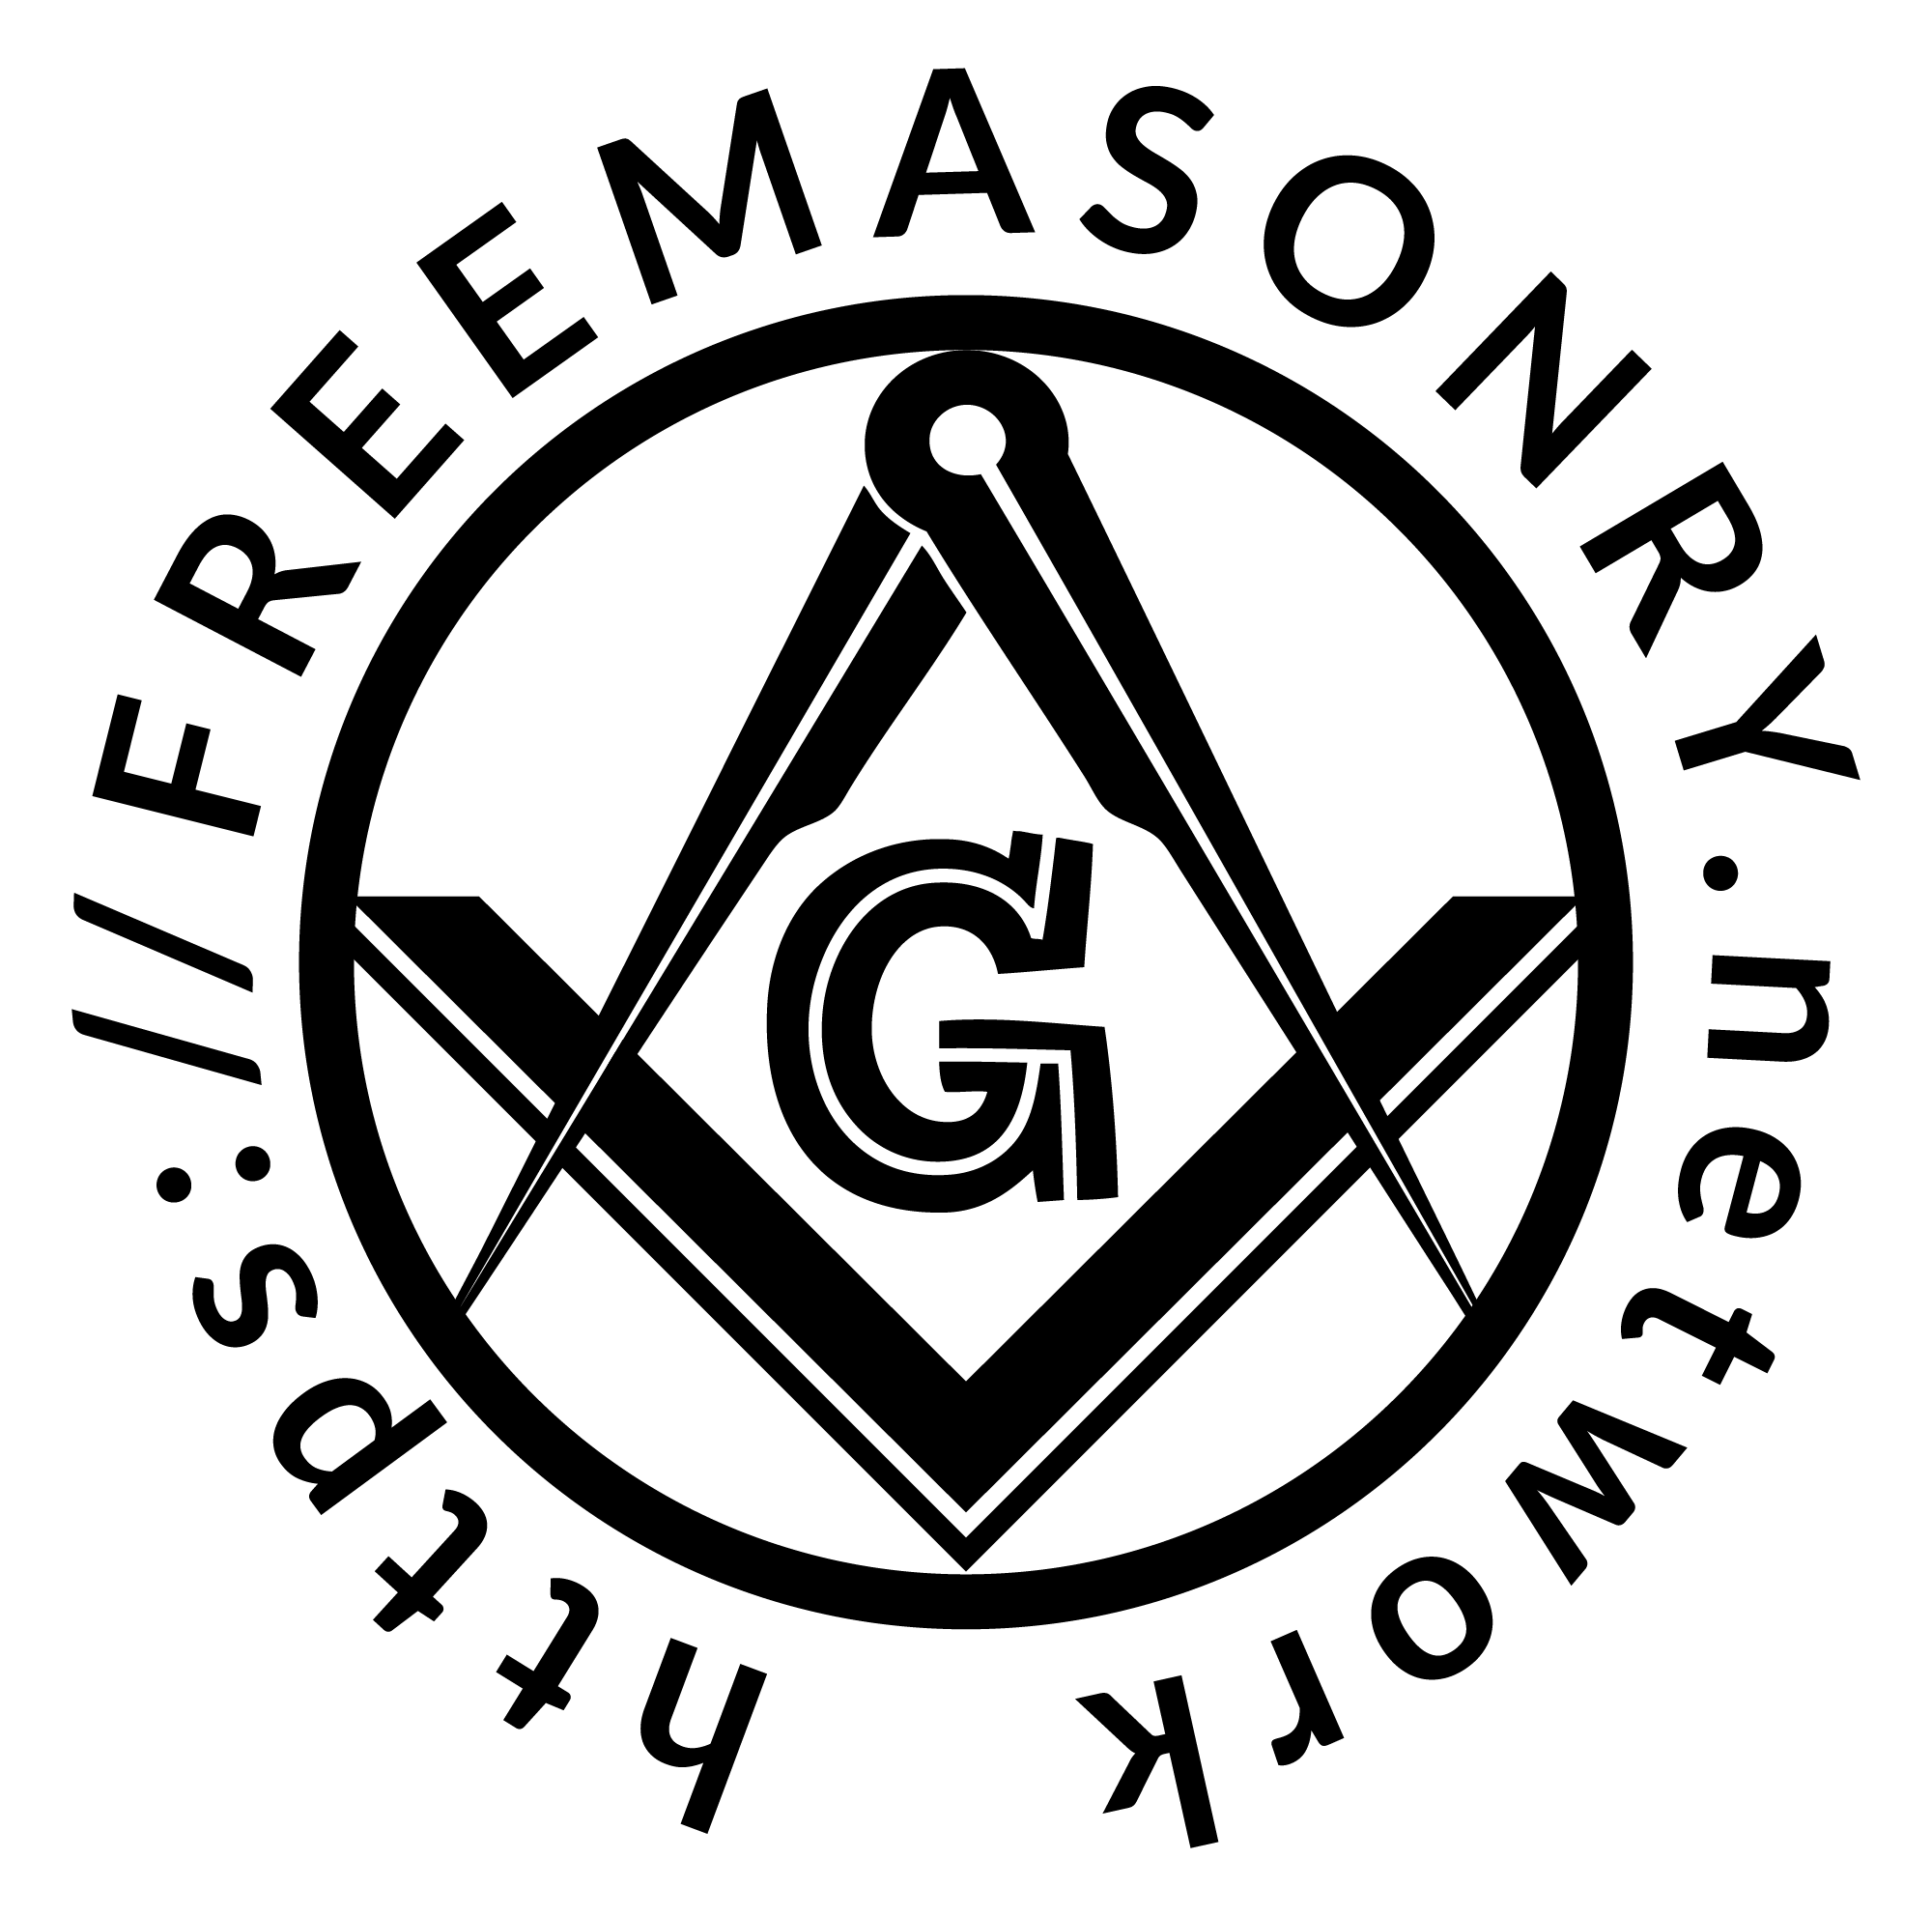 HISTORY OF FREEMASONRY IN CANADA